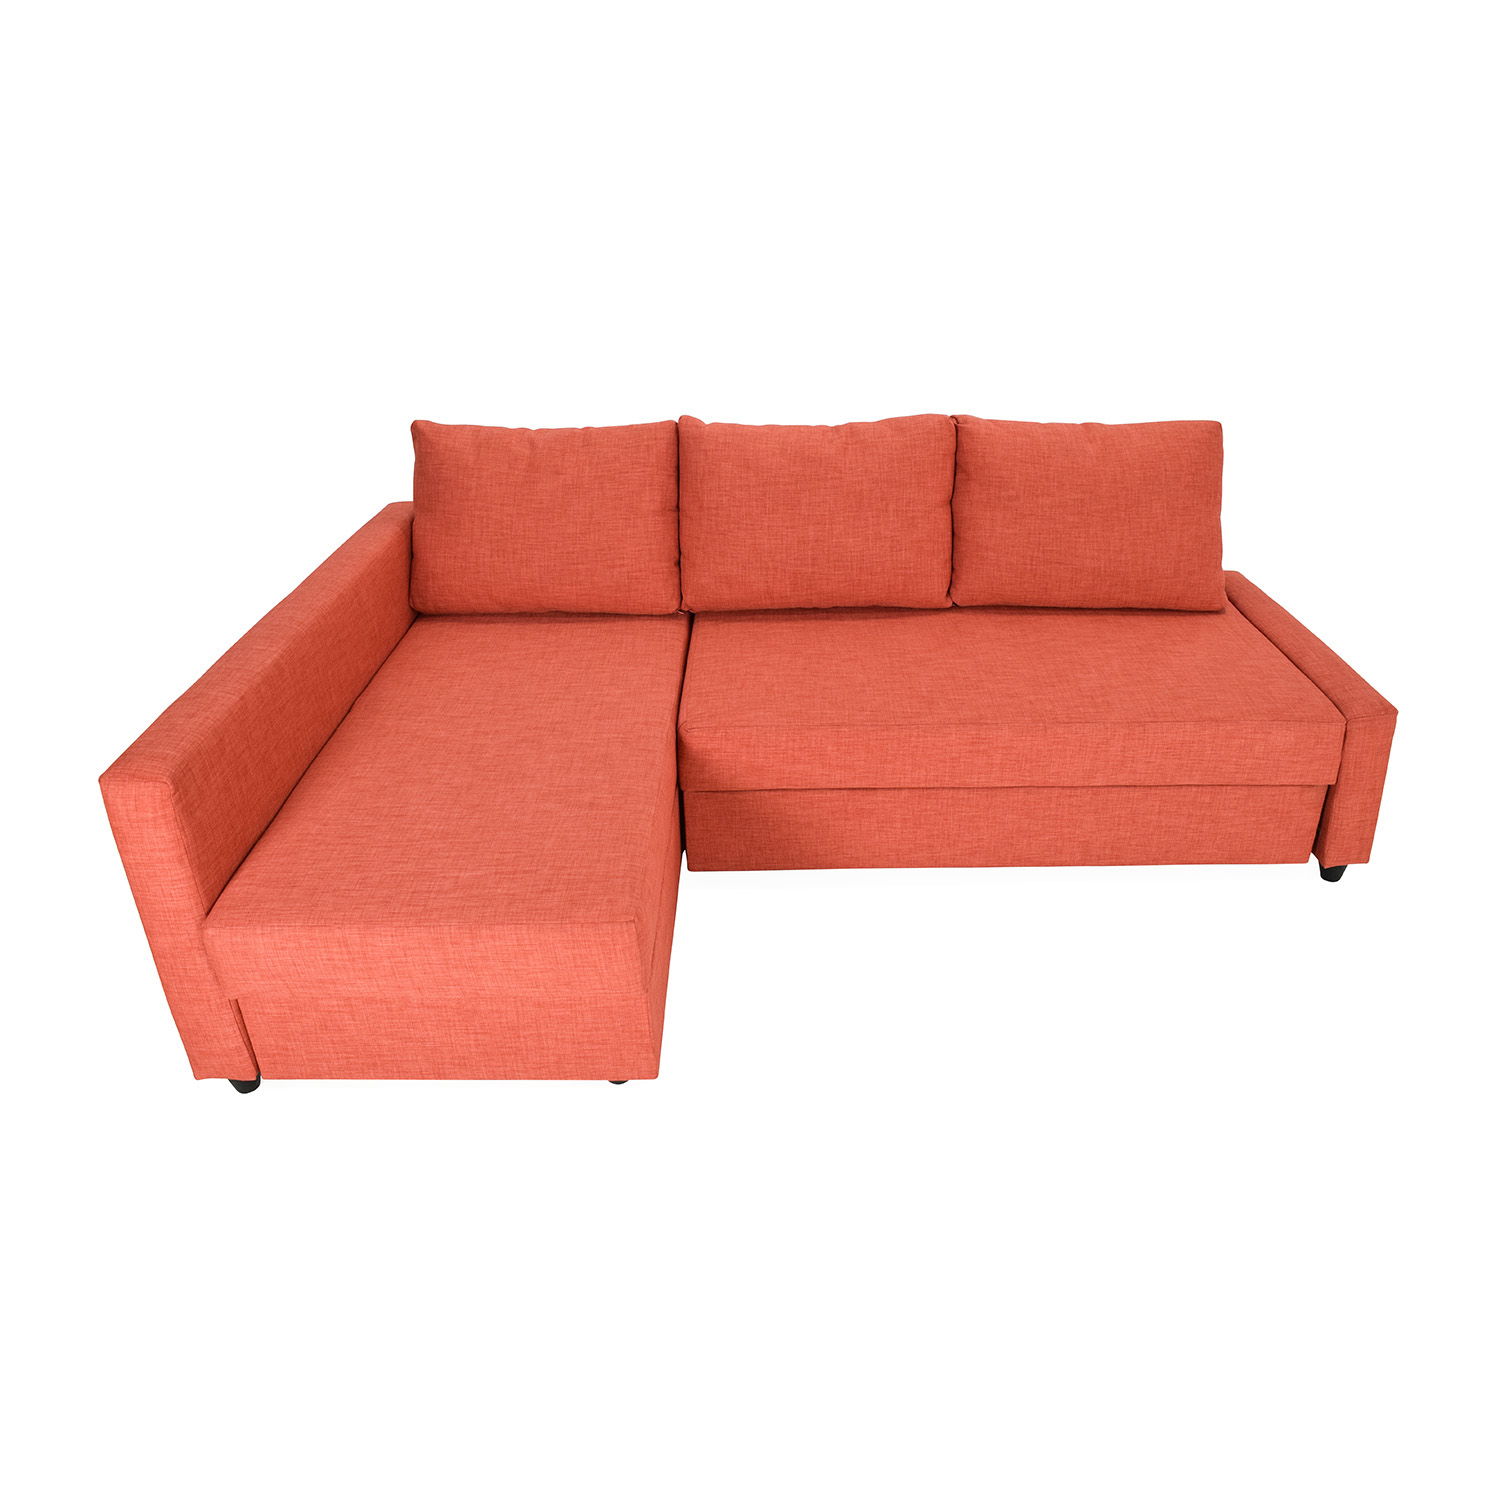 IKEA FRIHETEN Sofa Bed With Chaise Sofas